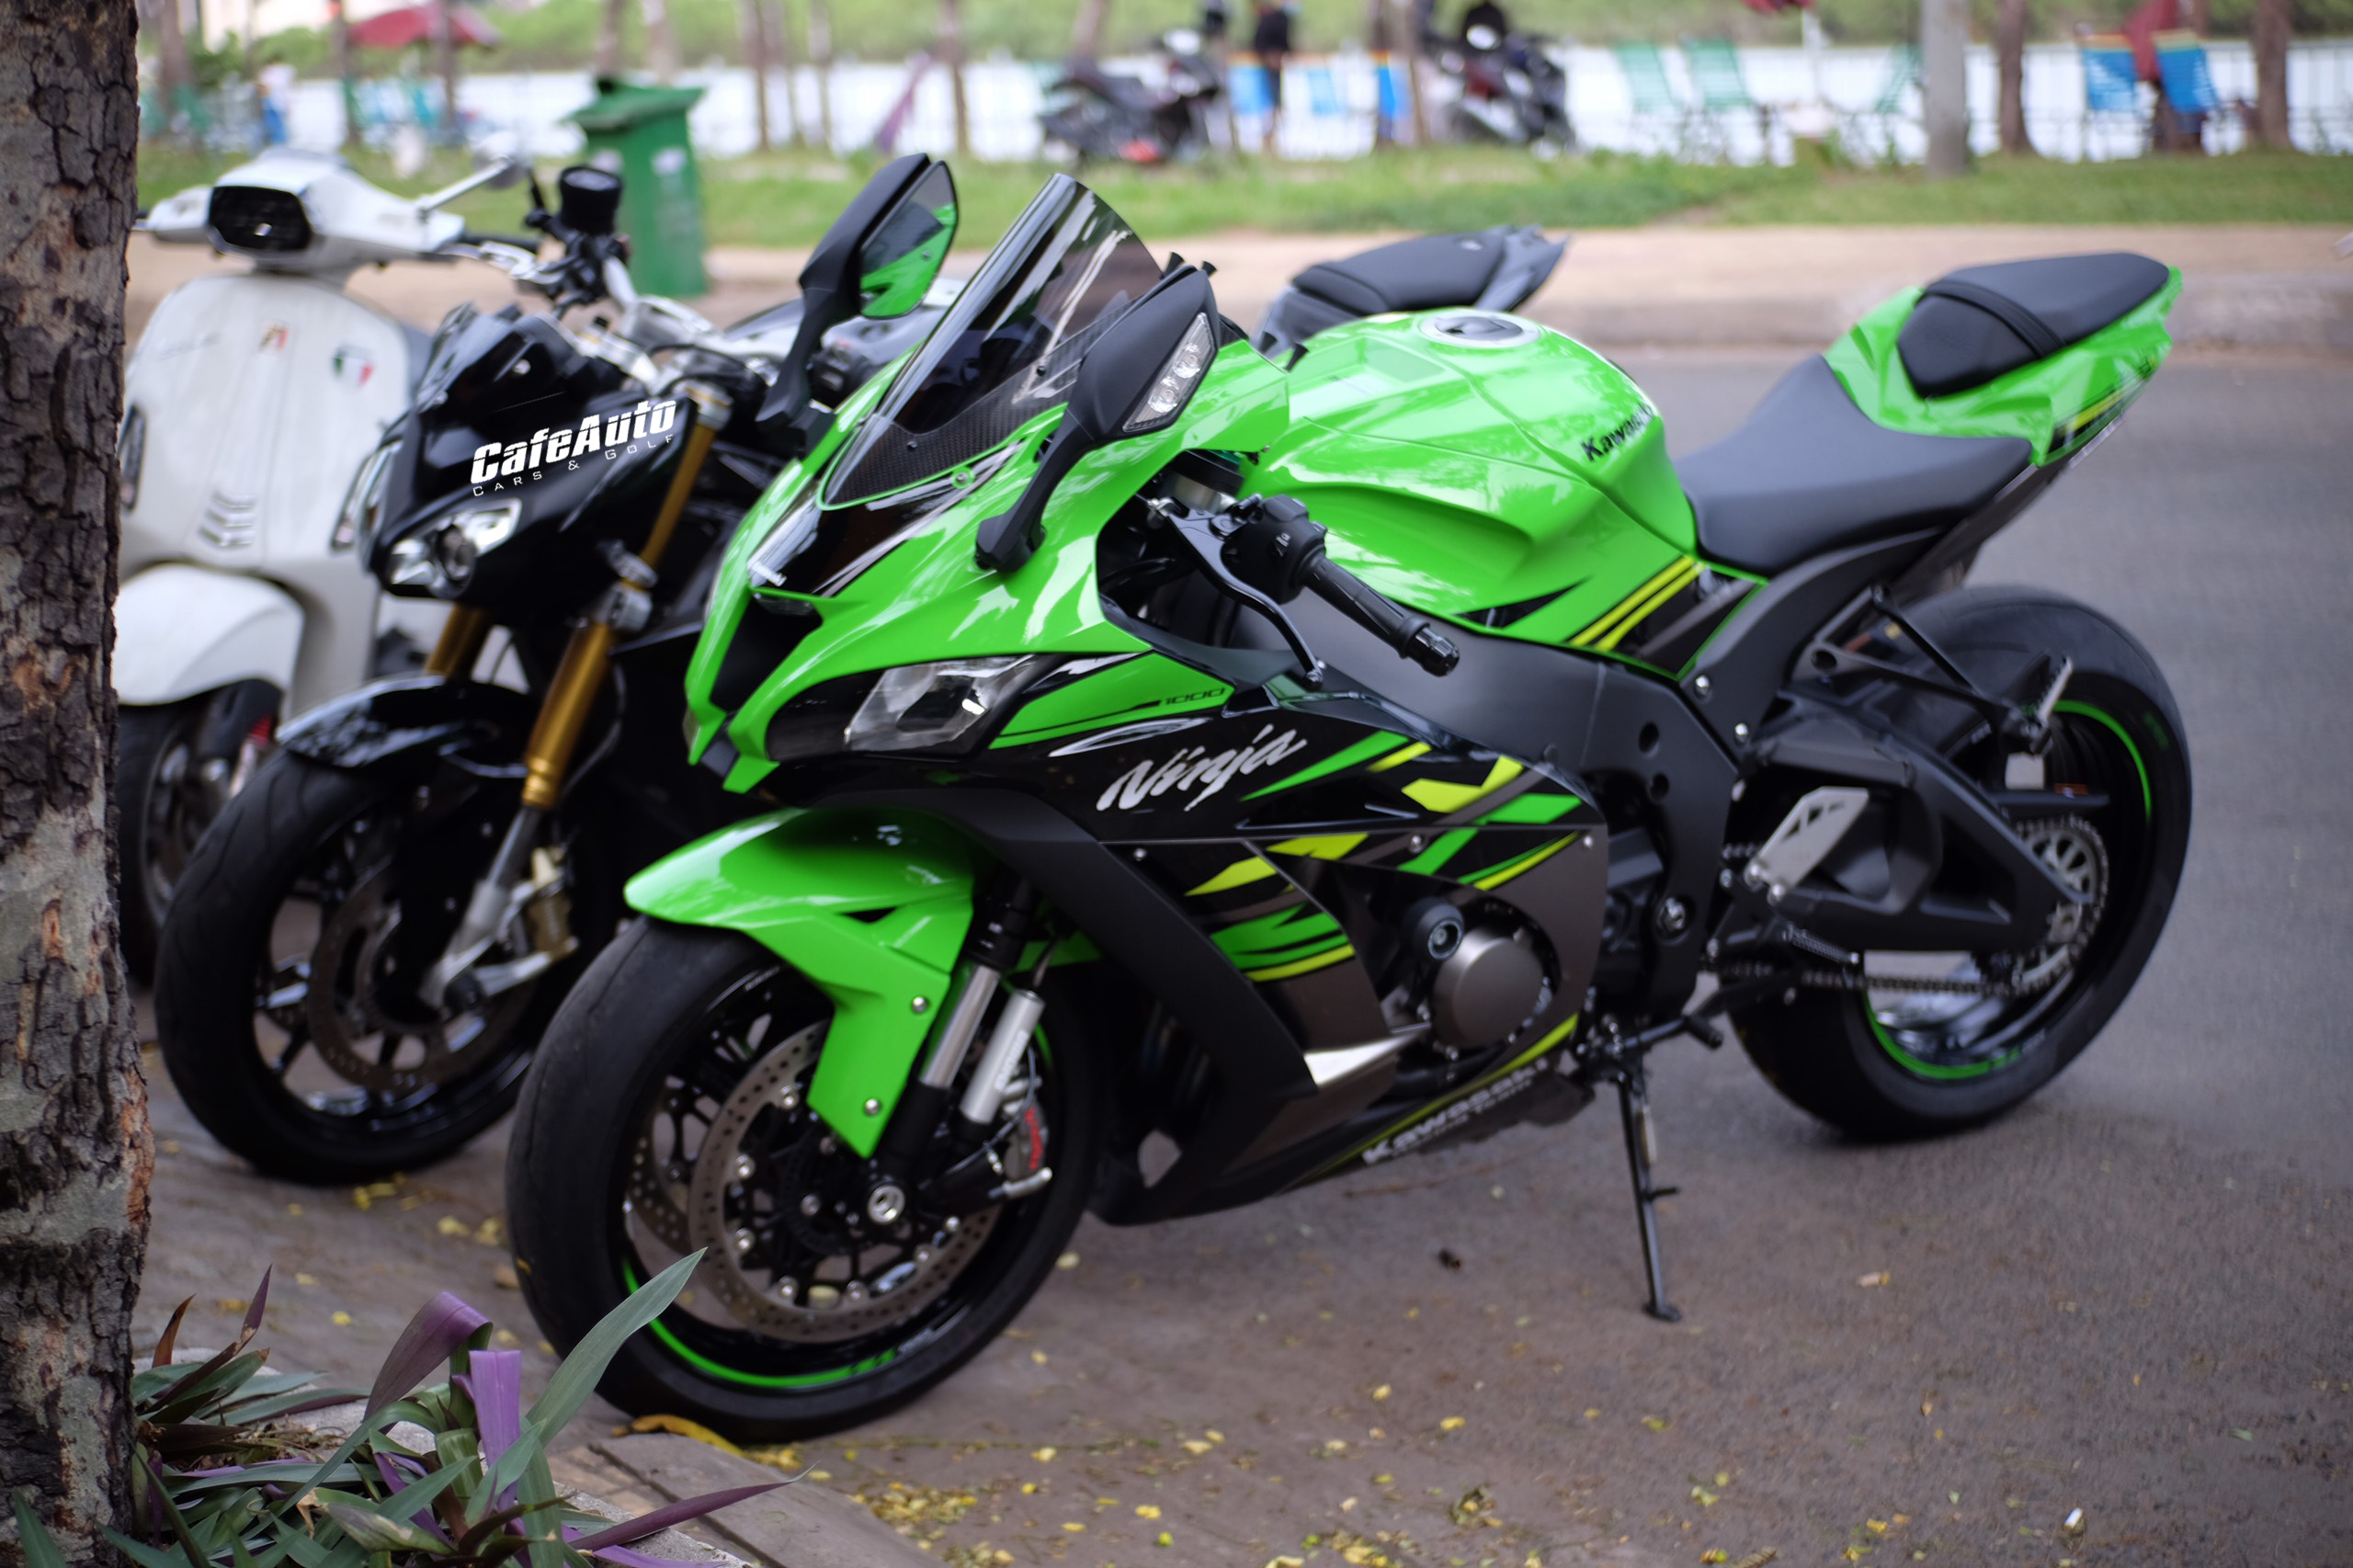 ZX10R-cafeautovn-9